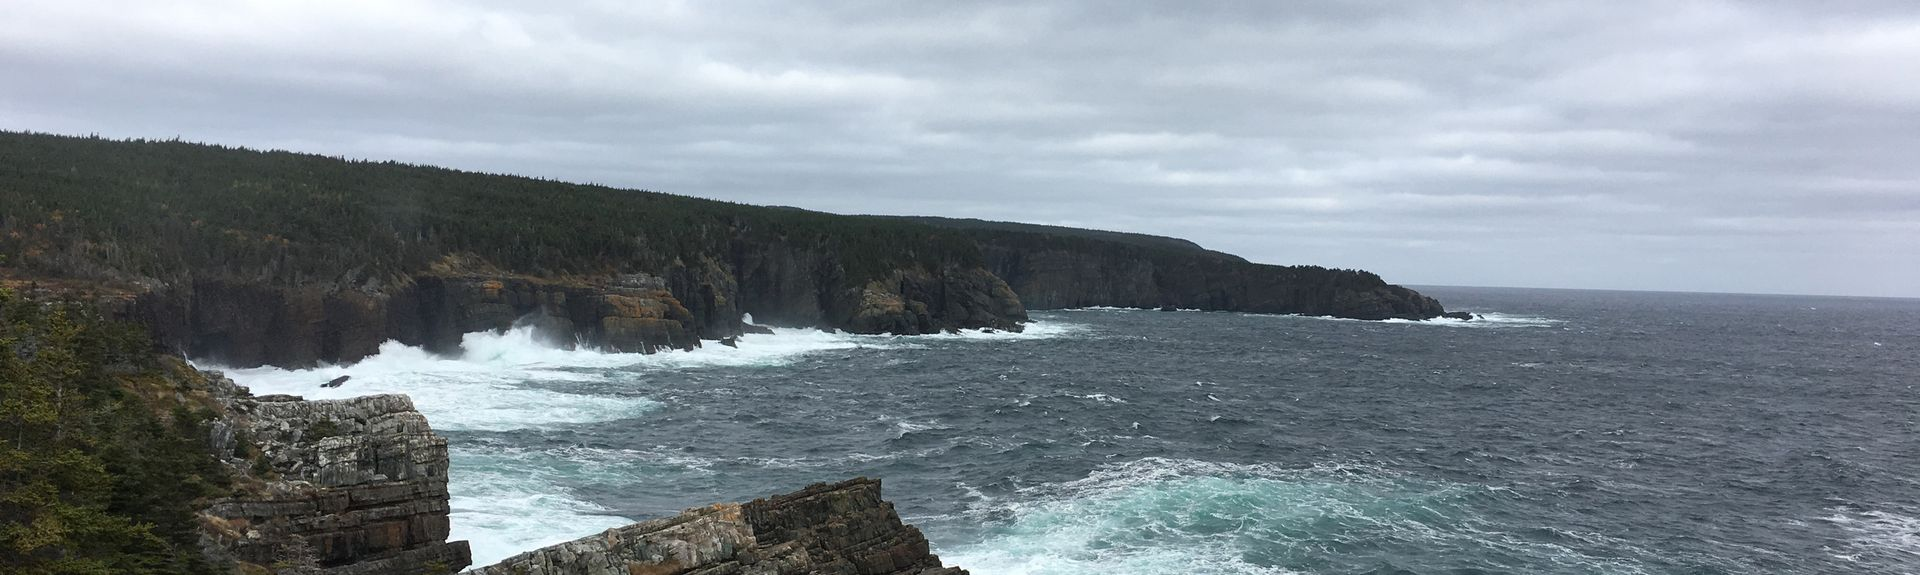 Pouch Cove, Newfoundland and Labrador, CA